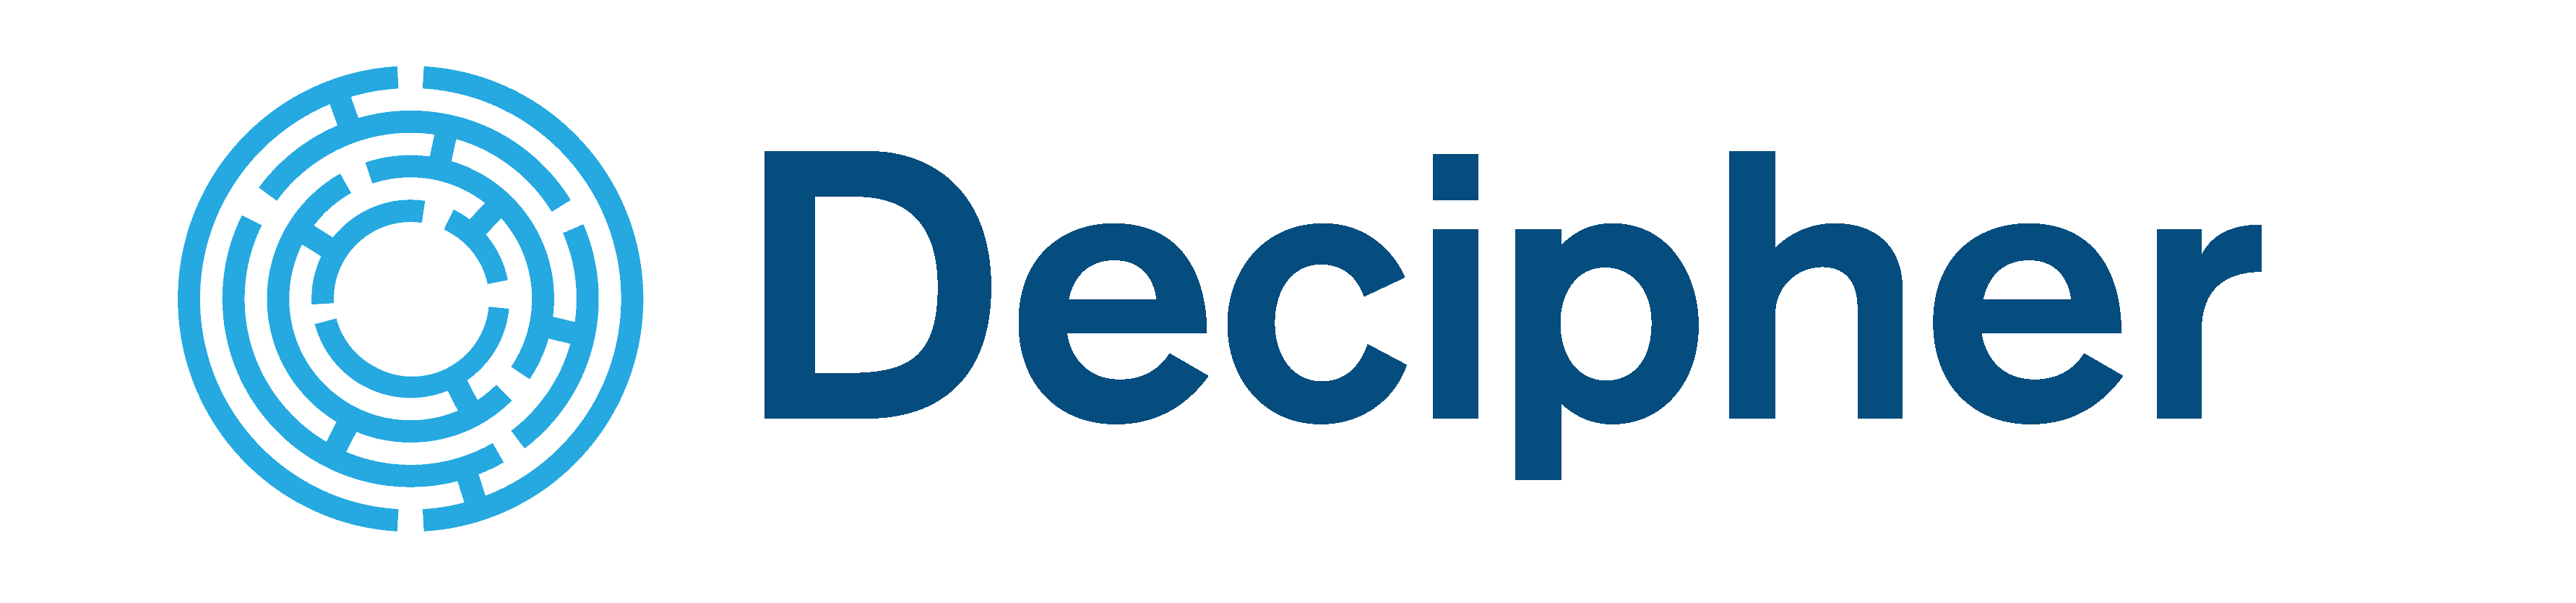 Decipher Credit - Technology for commercial lenders